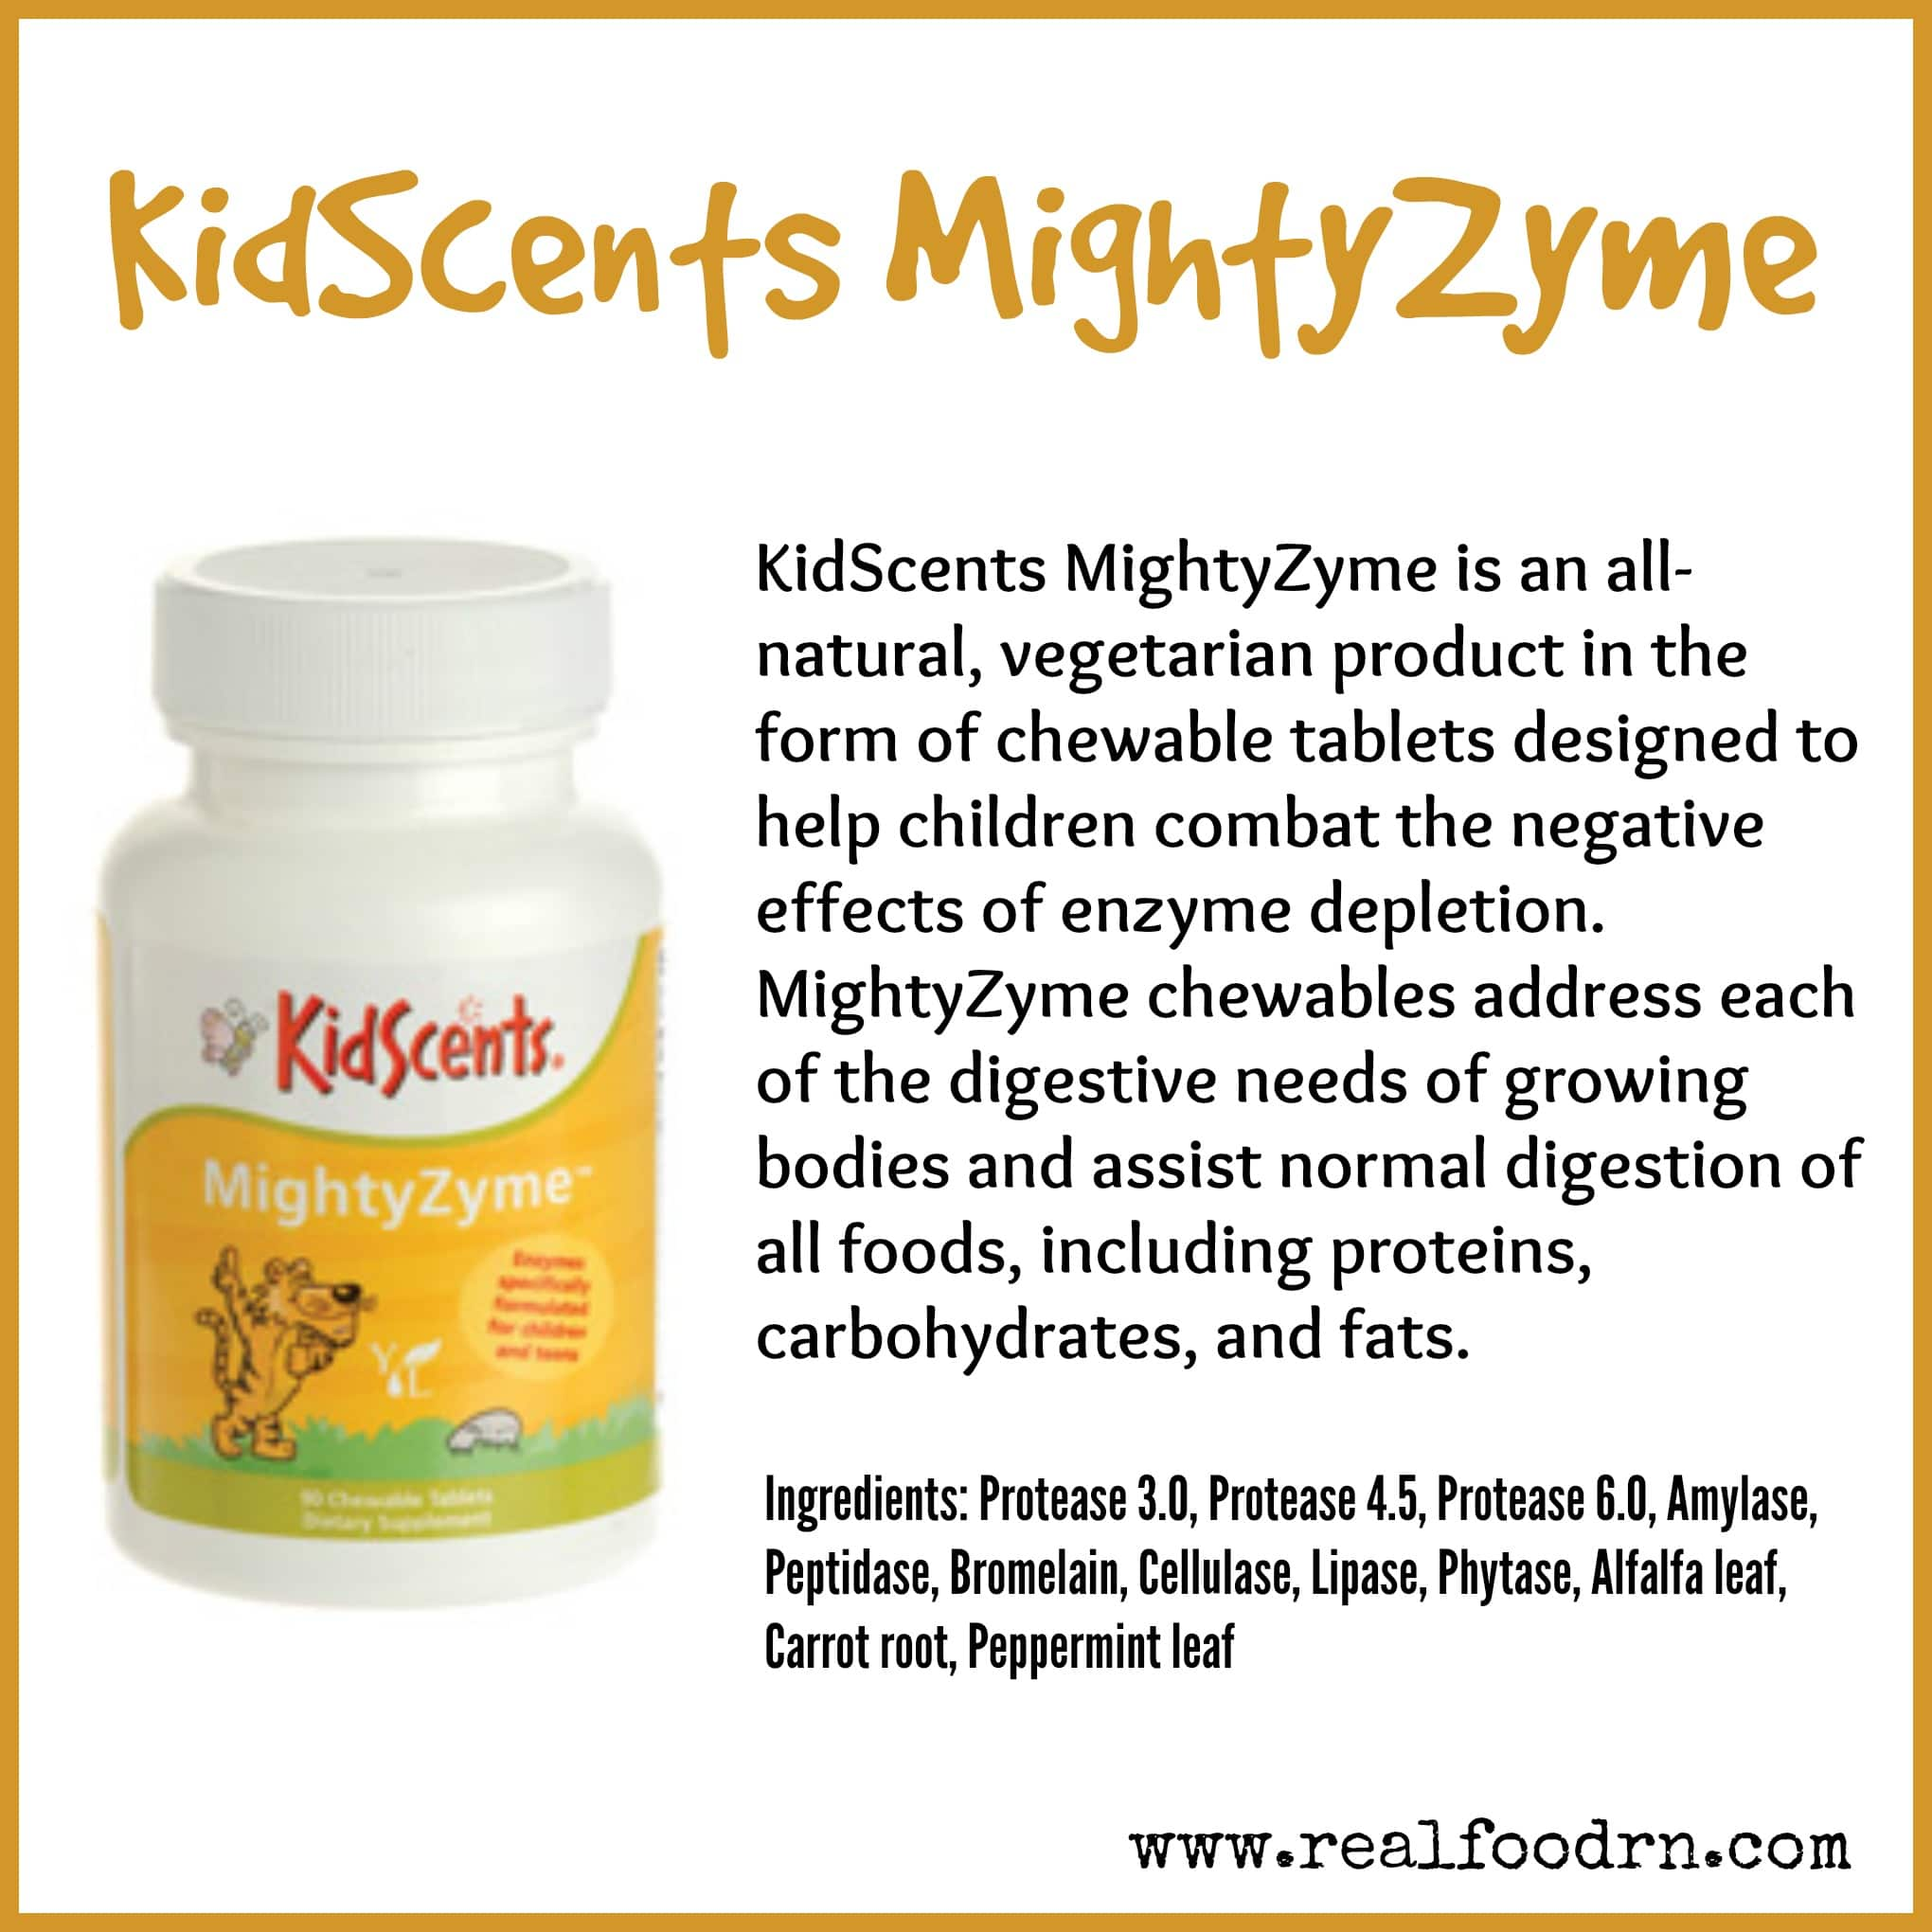 KidScents MightyZyme Chewable Tablets